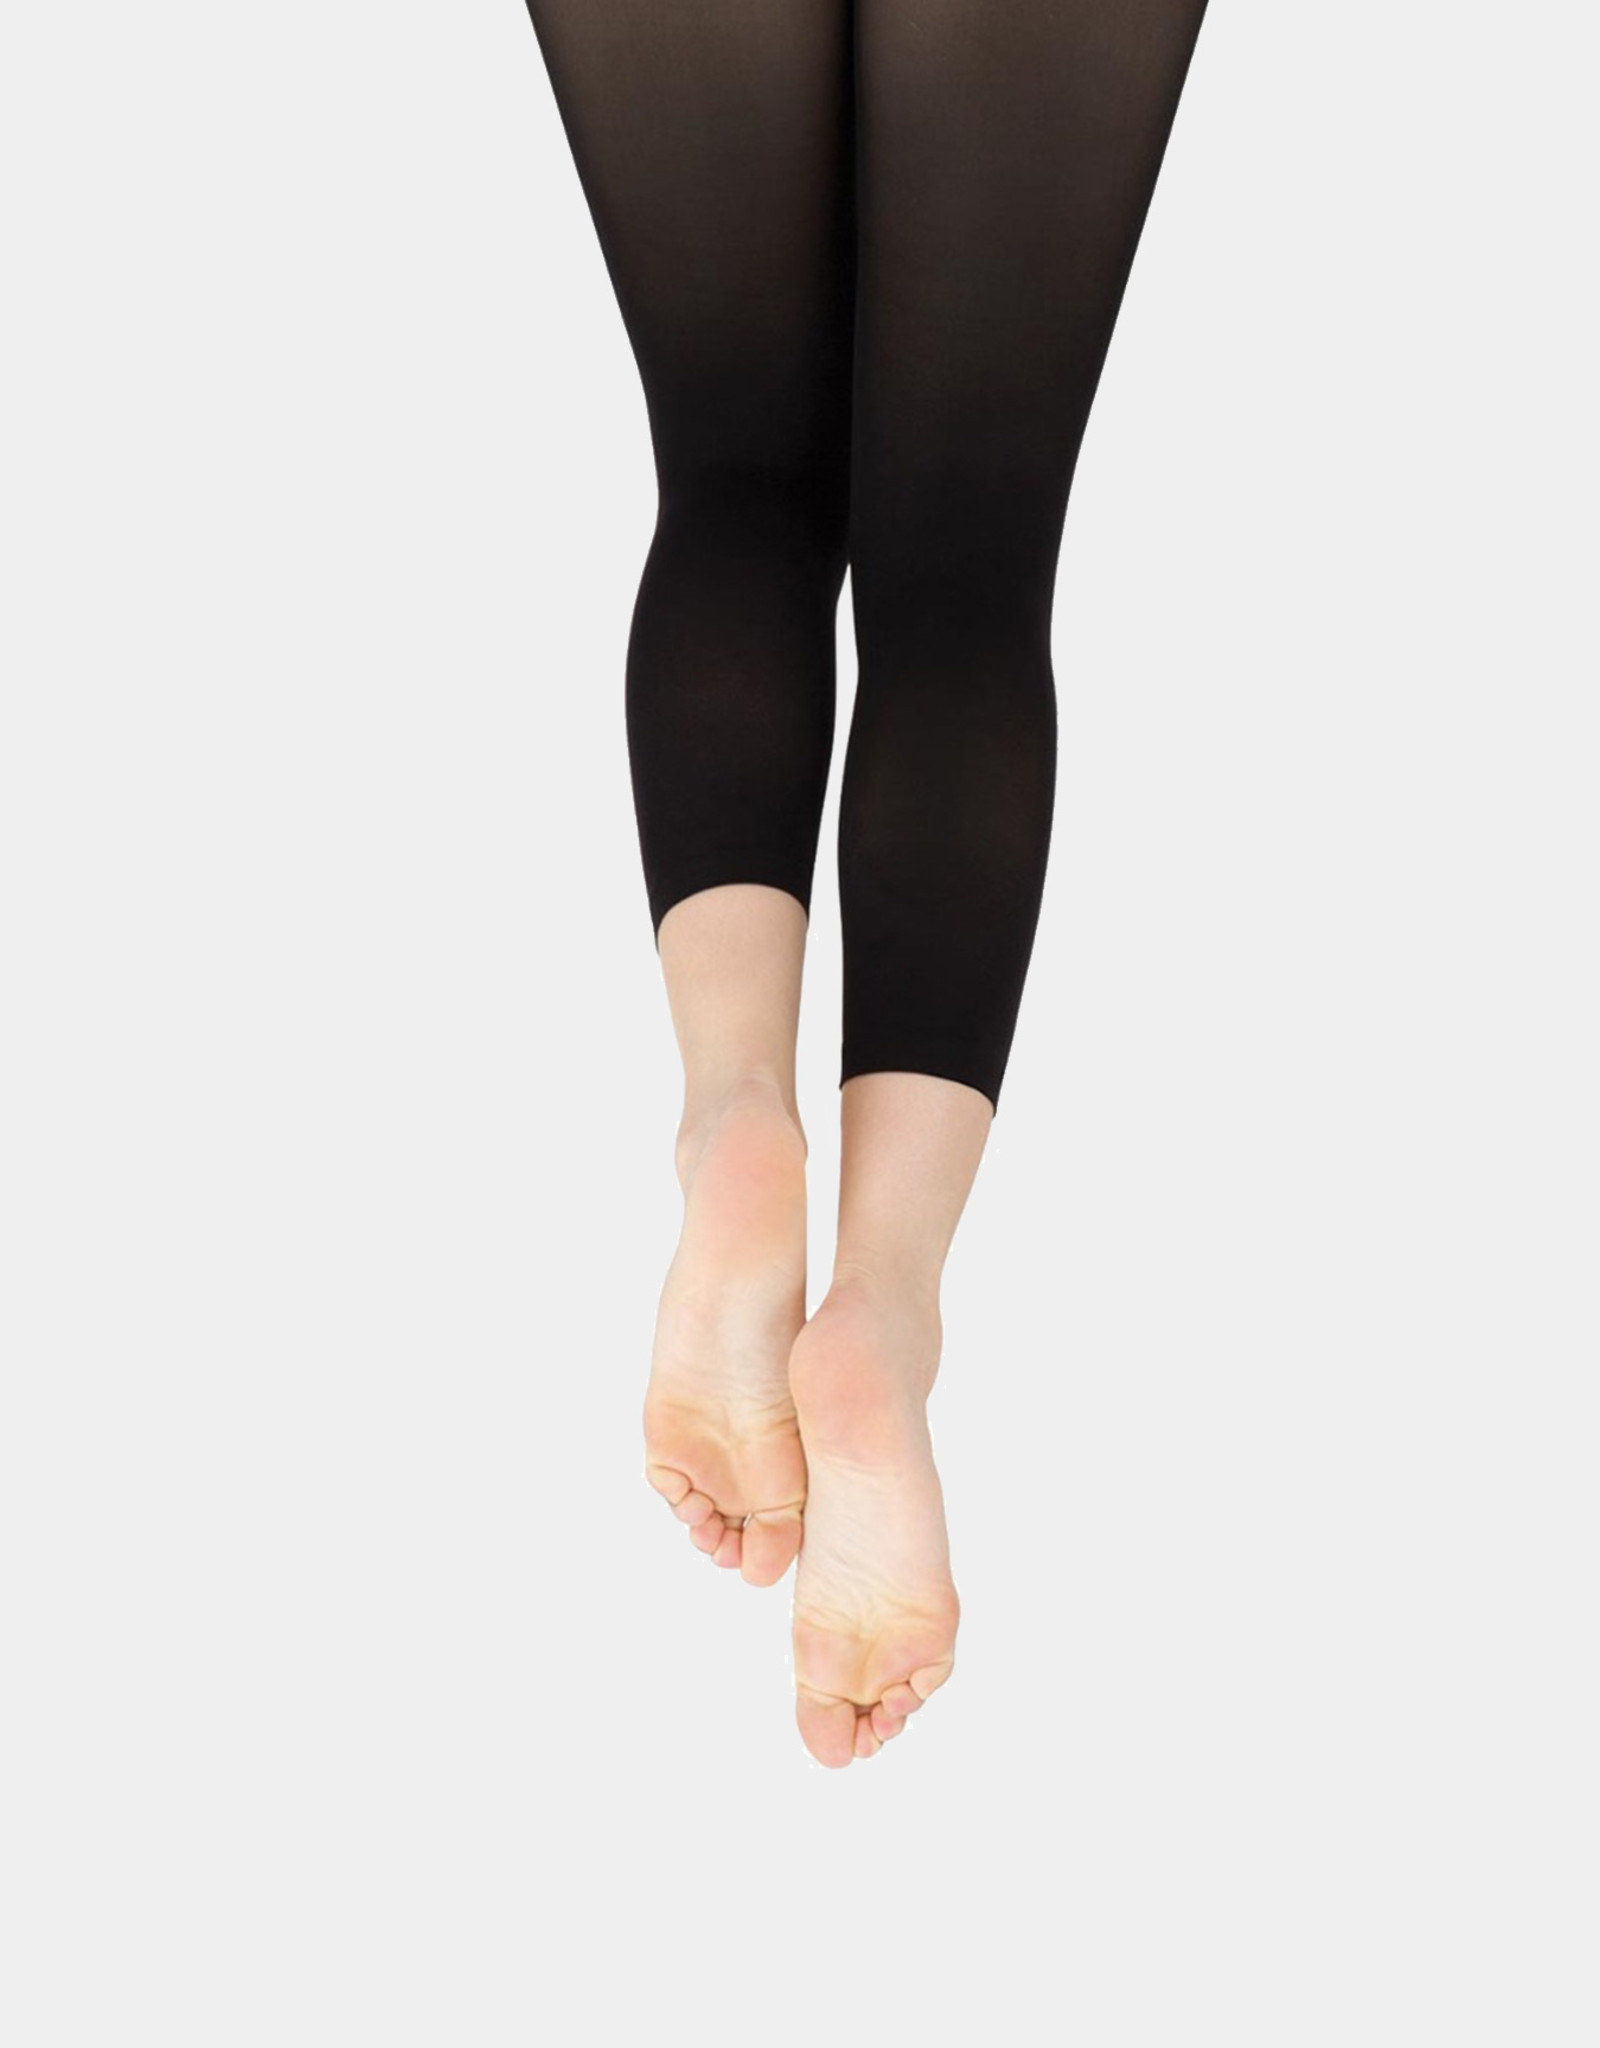 CAPEZIO CHILD ULTRA SOFT SELF KNIT WAISTBAND FOOTLESS TIGHT (1917C)